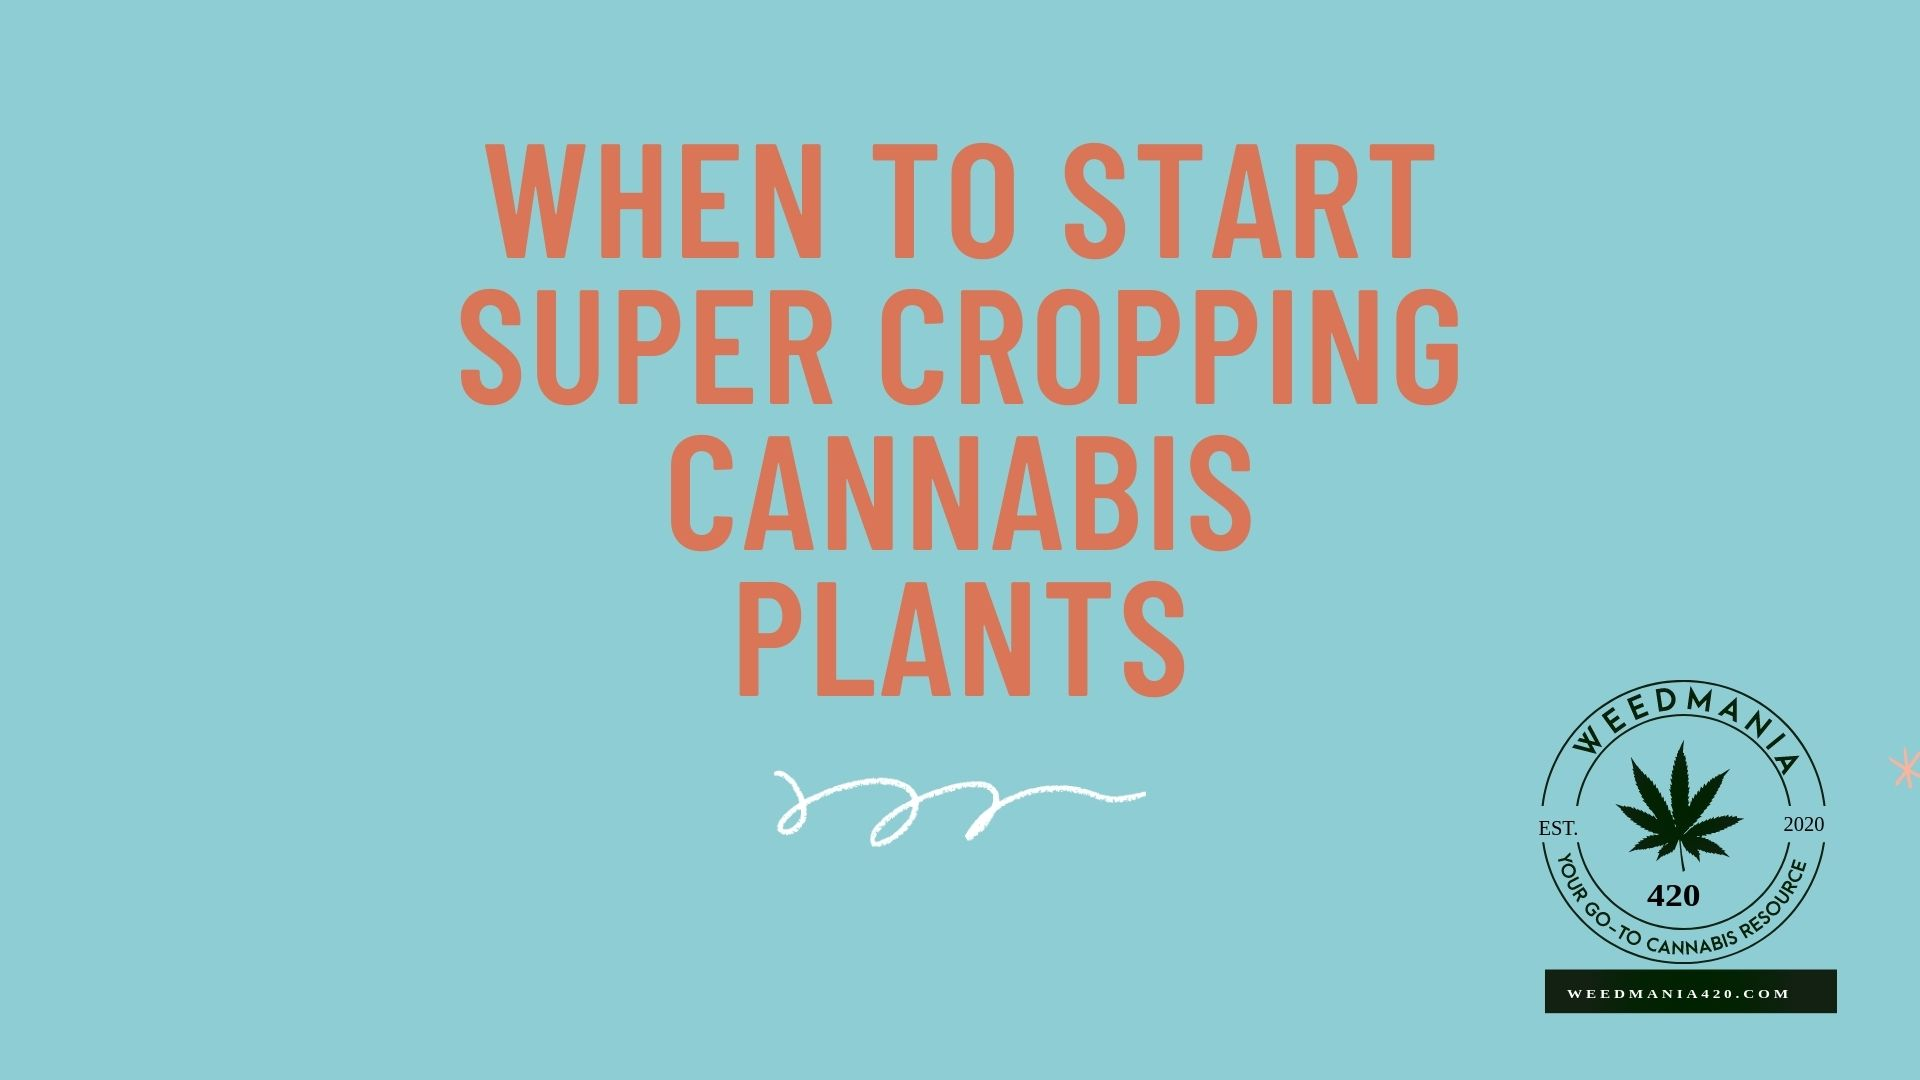 When to Start Super Cropping Cannabis Plants